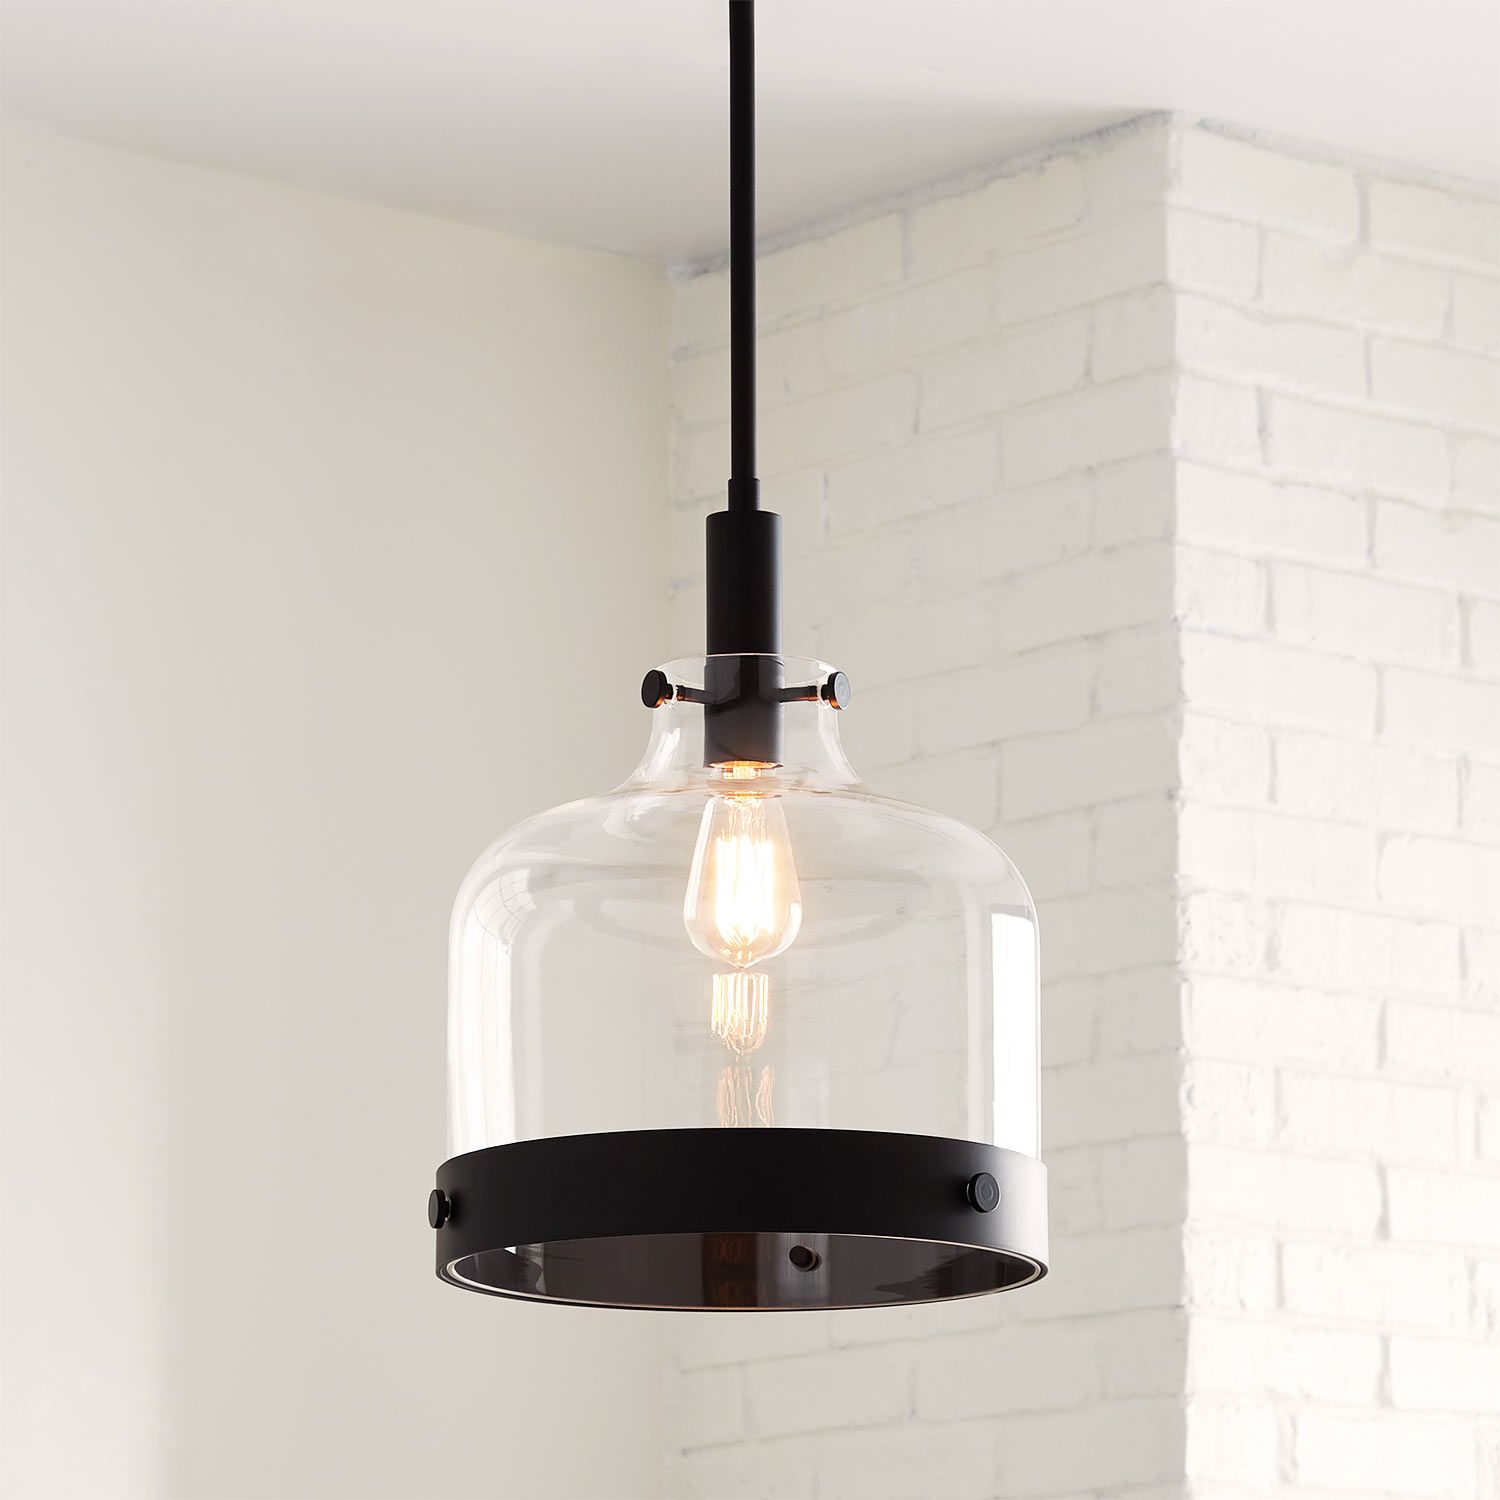 Crozet Pendant Light In Single Light In Polished Nickel Metal